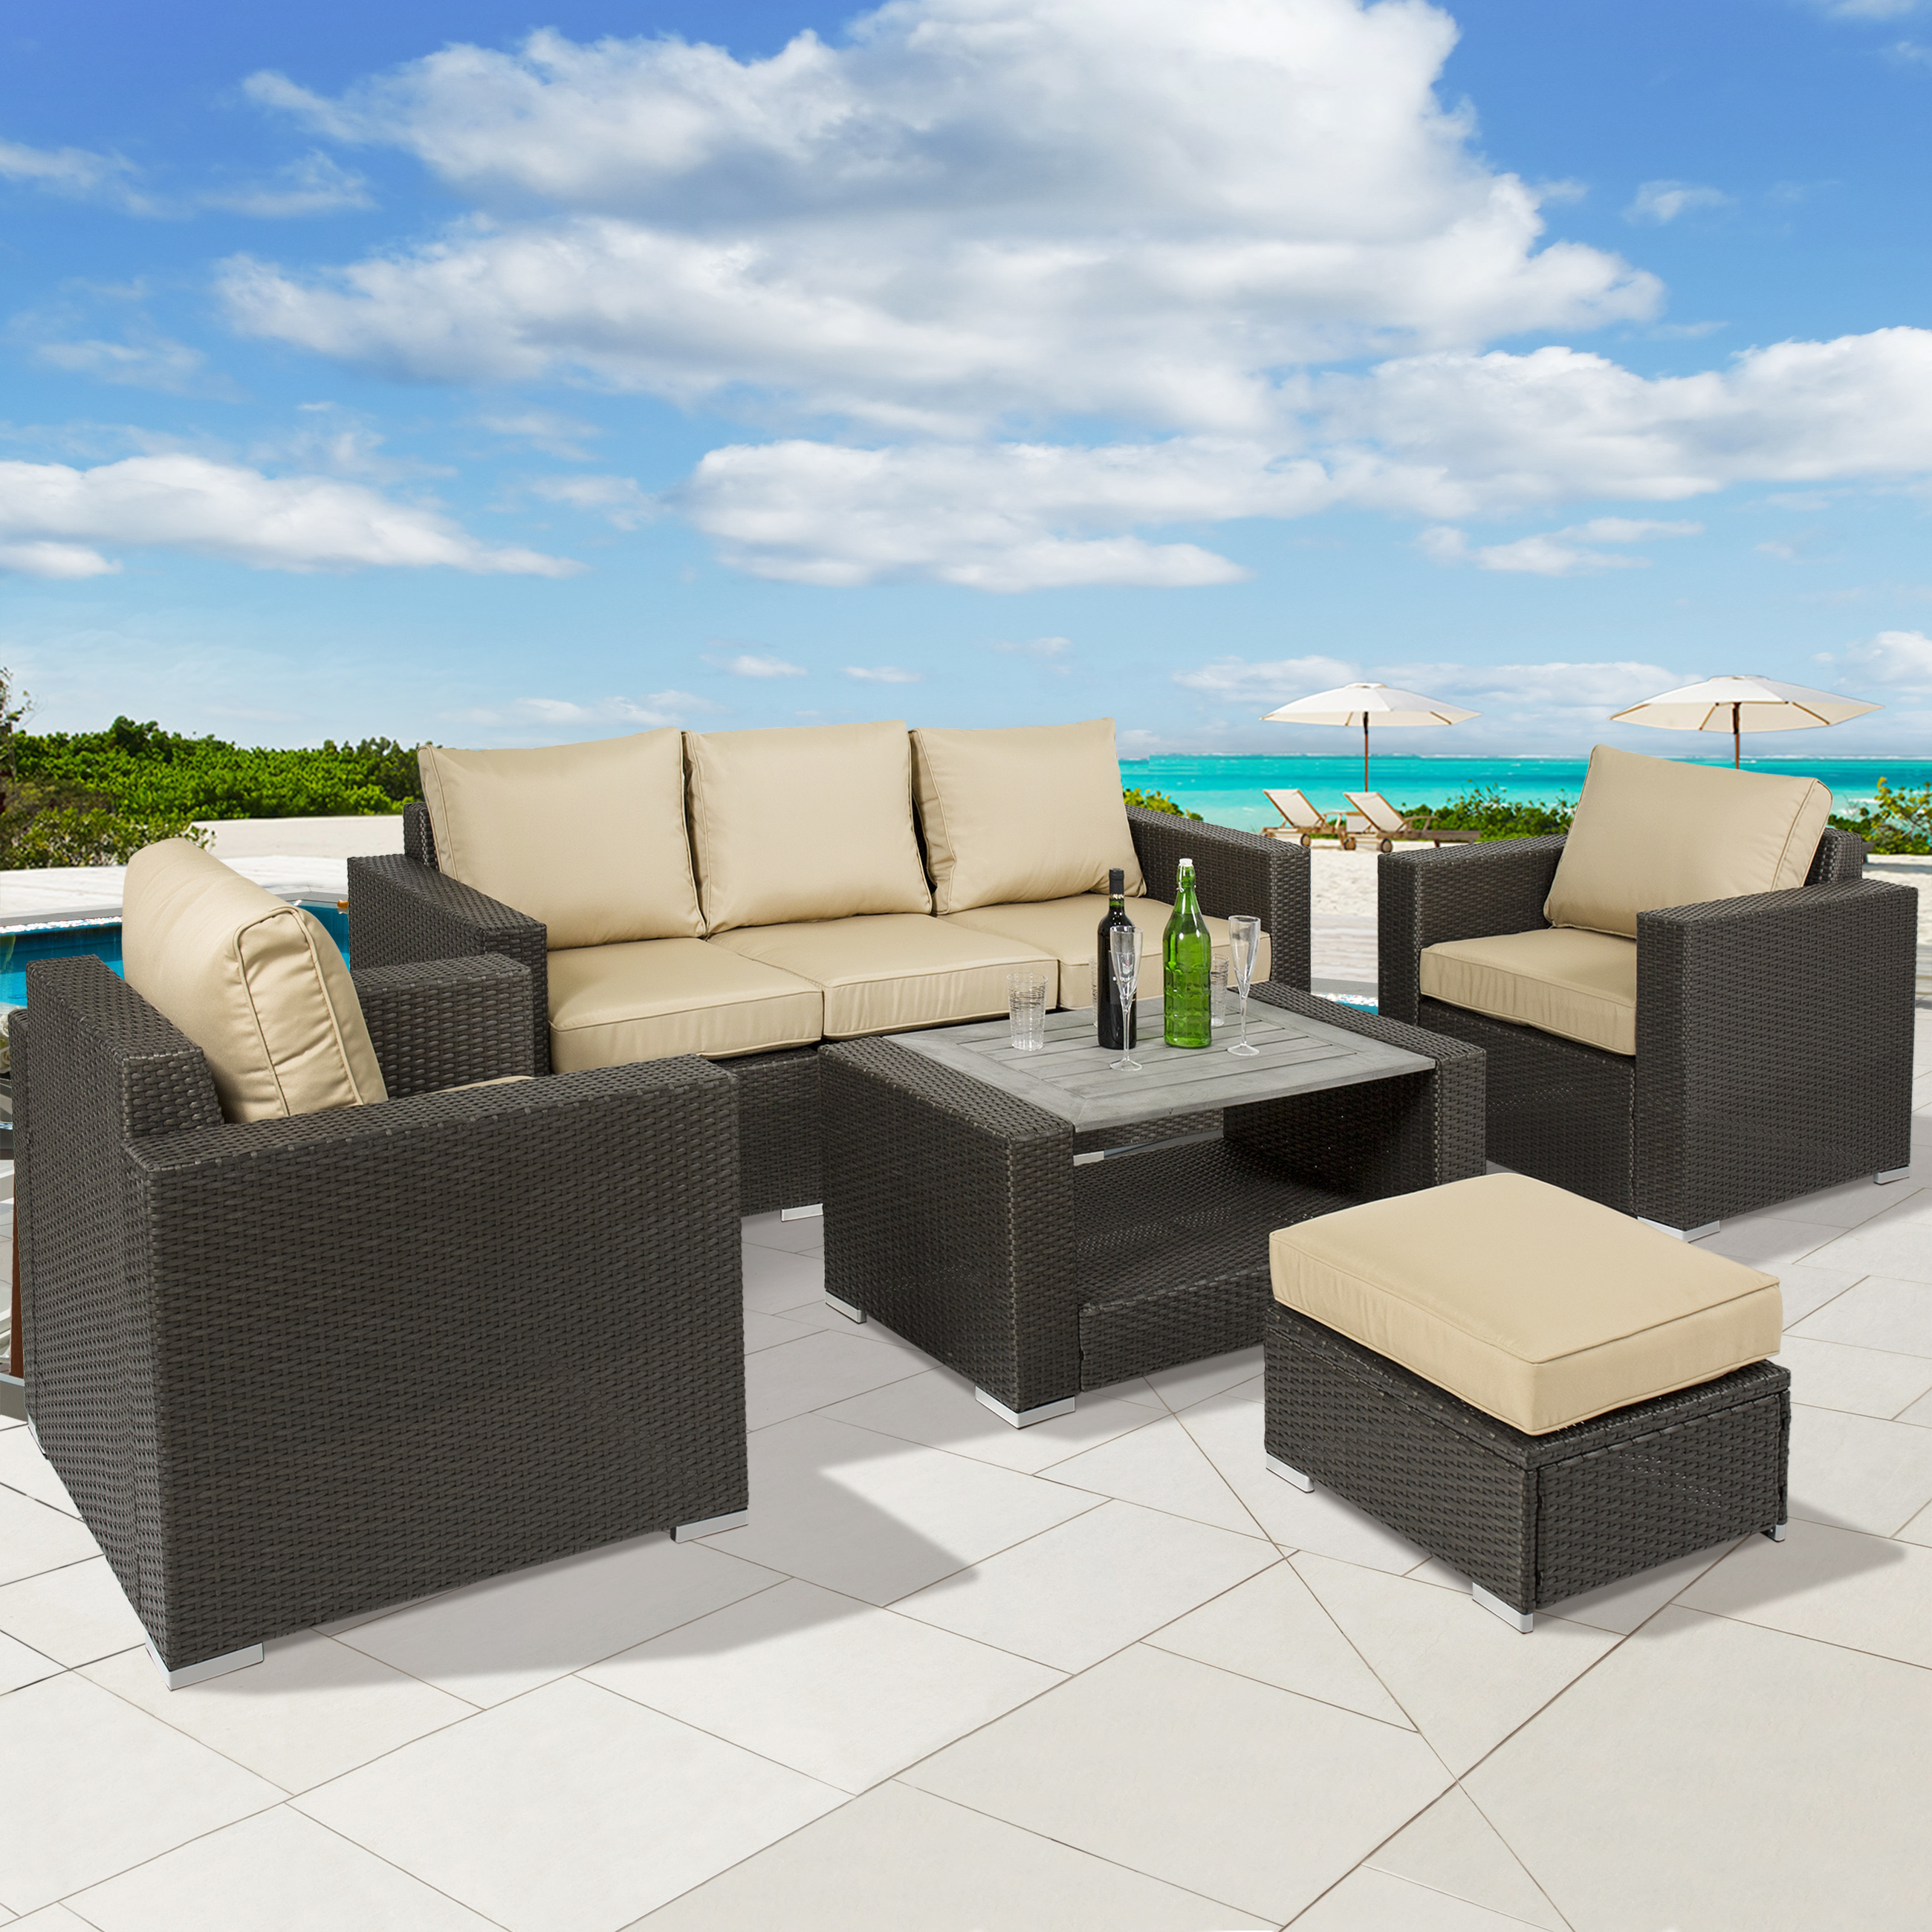 Best Choice Products 7 Piece Outdoor Patio Wicker Sectional Furniture Sofa  Set W/ Table, Cushions, Ottoman   Brown   Walmart.com